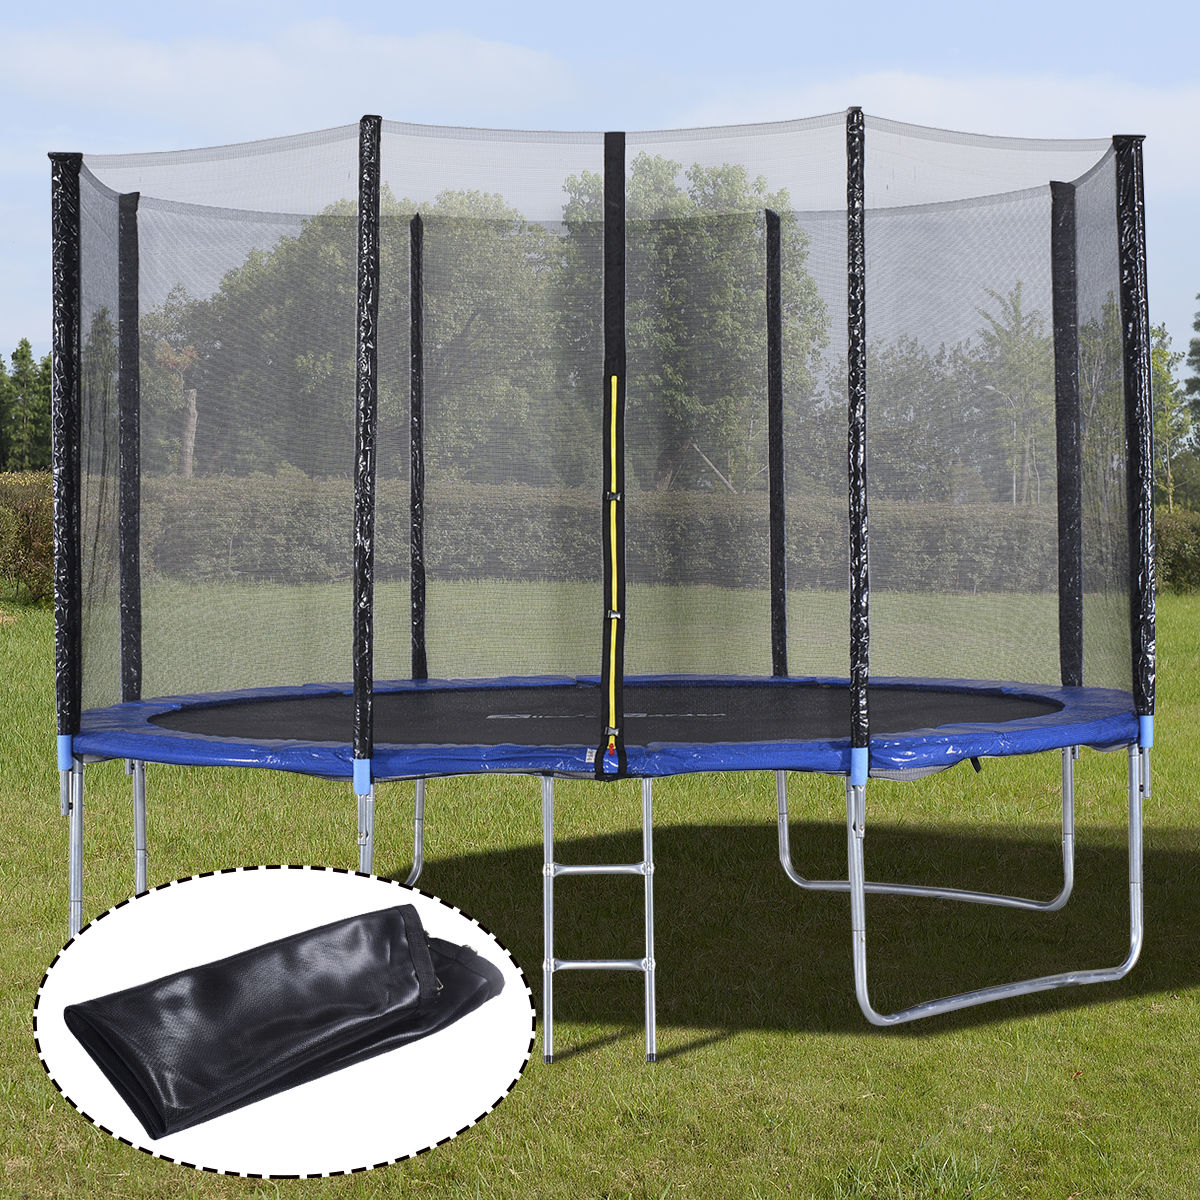 Trampoline Parts Canada: 12 FT Trampoline Combo Bounce Jump Safety Enclosure Net W